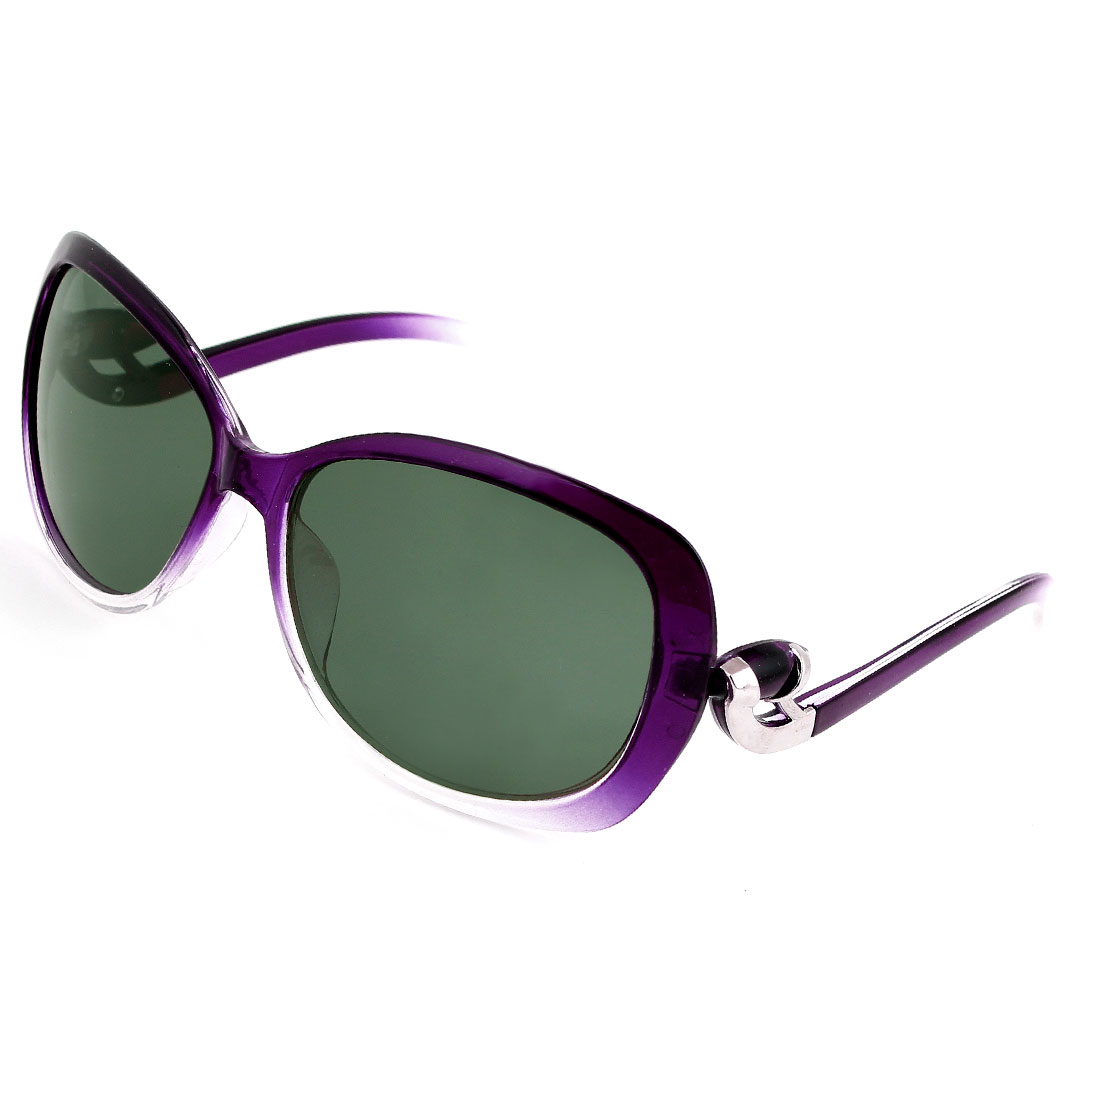 Lady Teardrop Shape Gray Lens Eyeglasses Polarized Sunglasses Purple